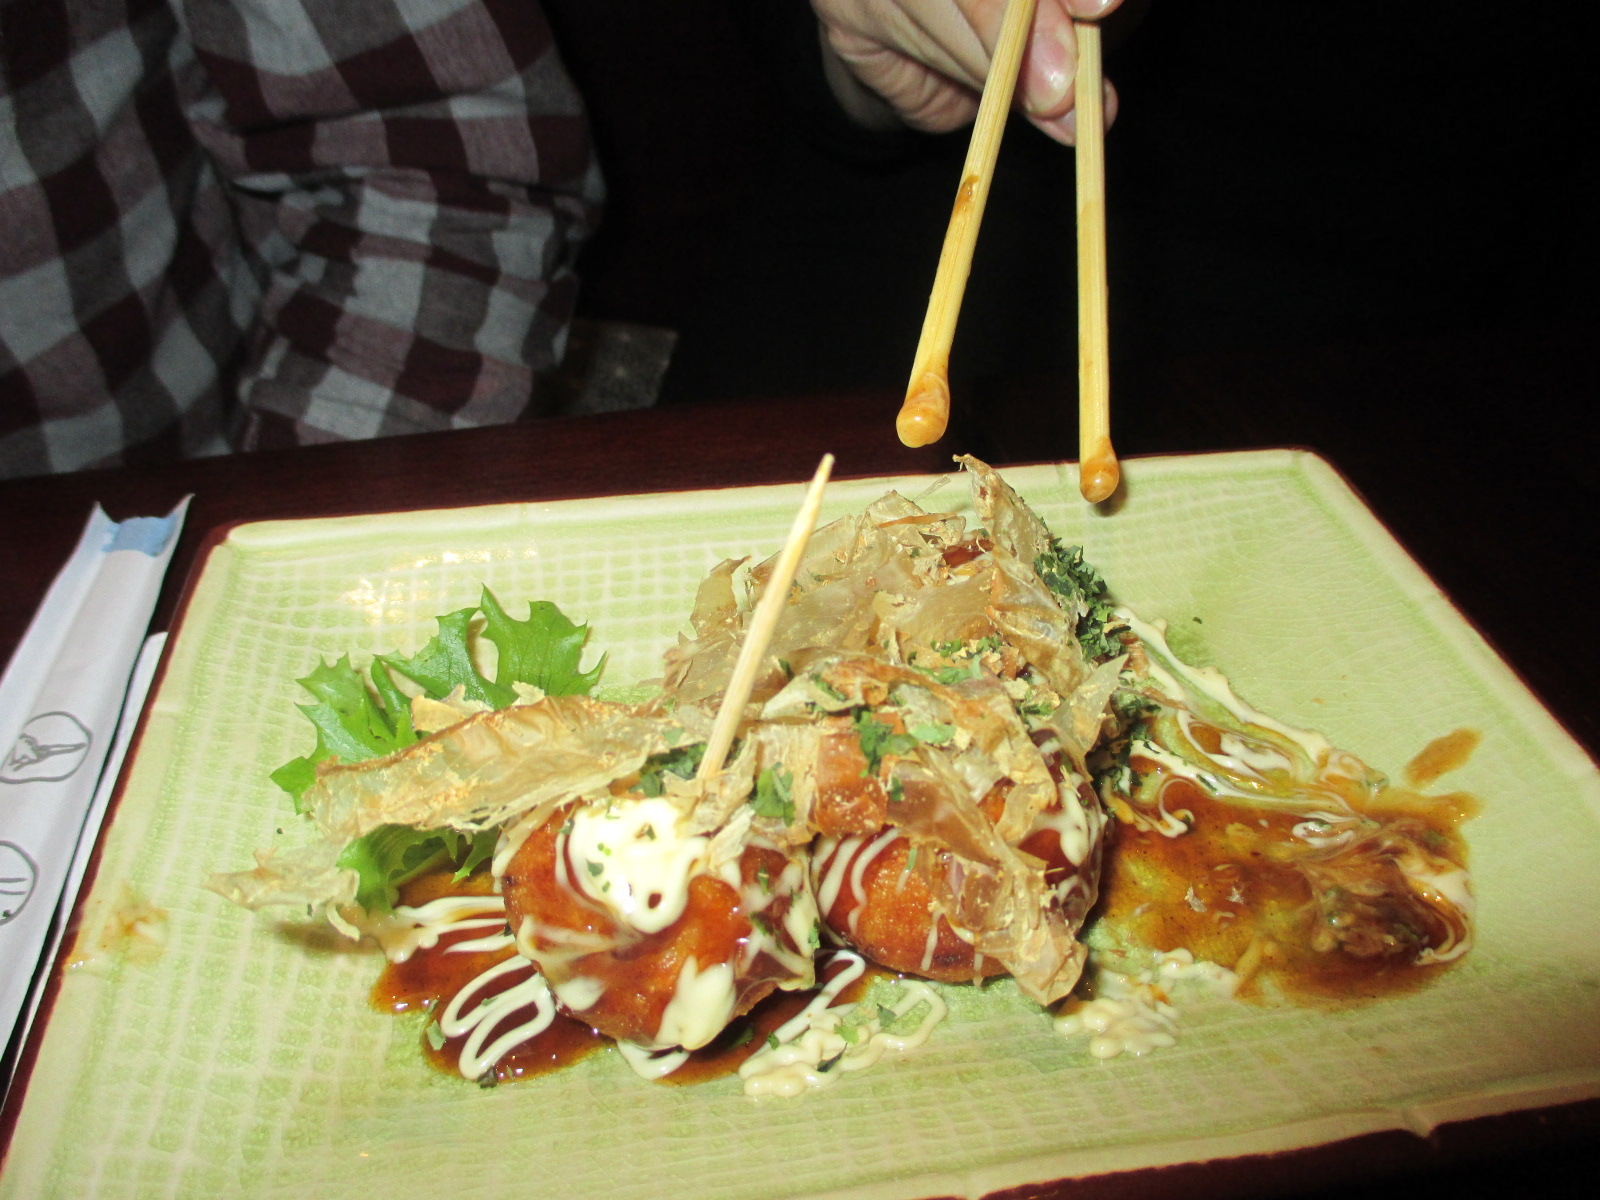 Hanabi, flavours of Japan in Berlin | Around Berlin in 80 ...